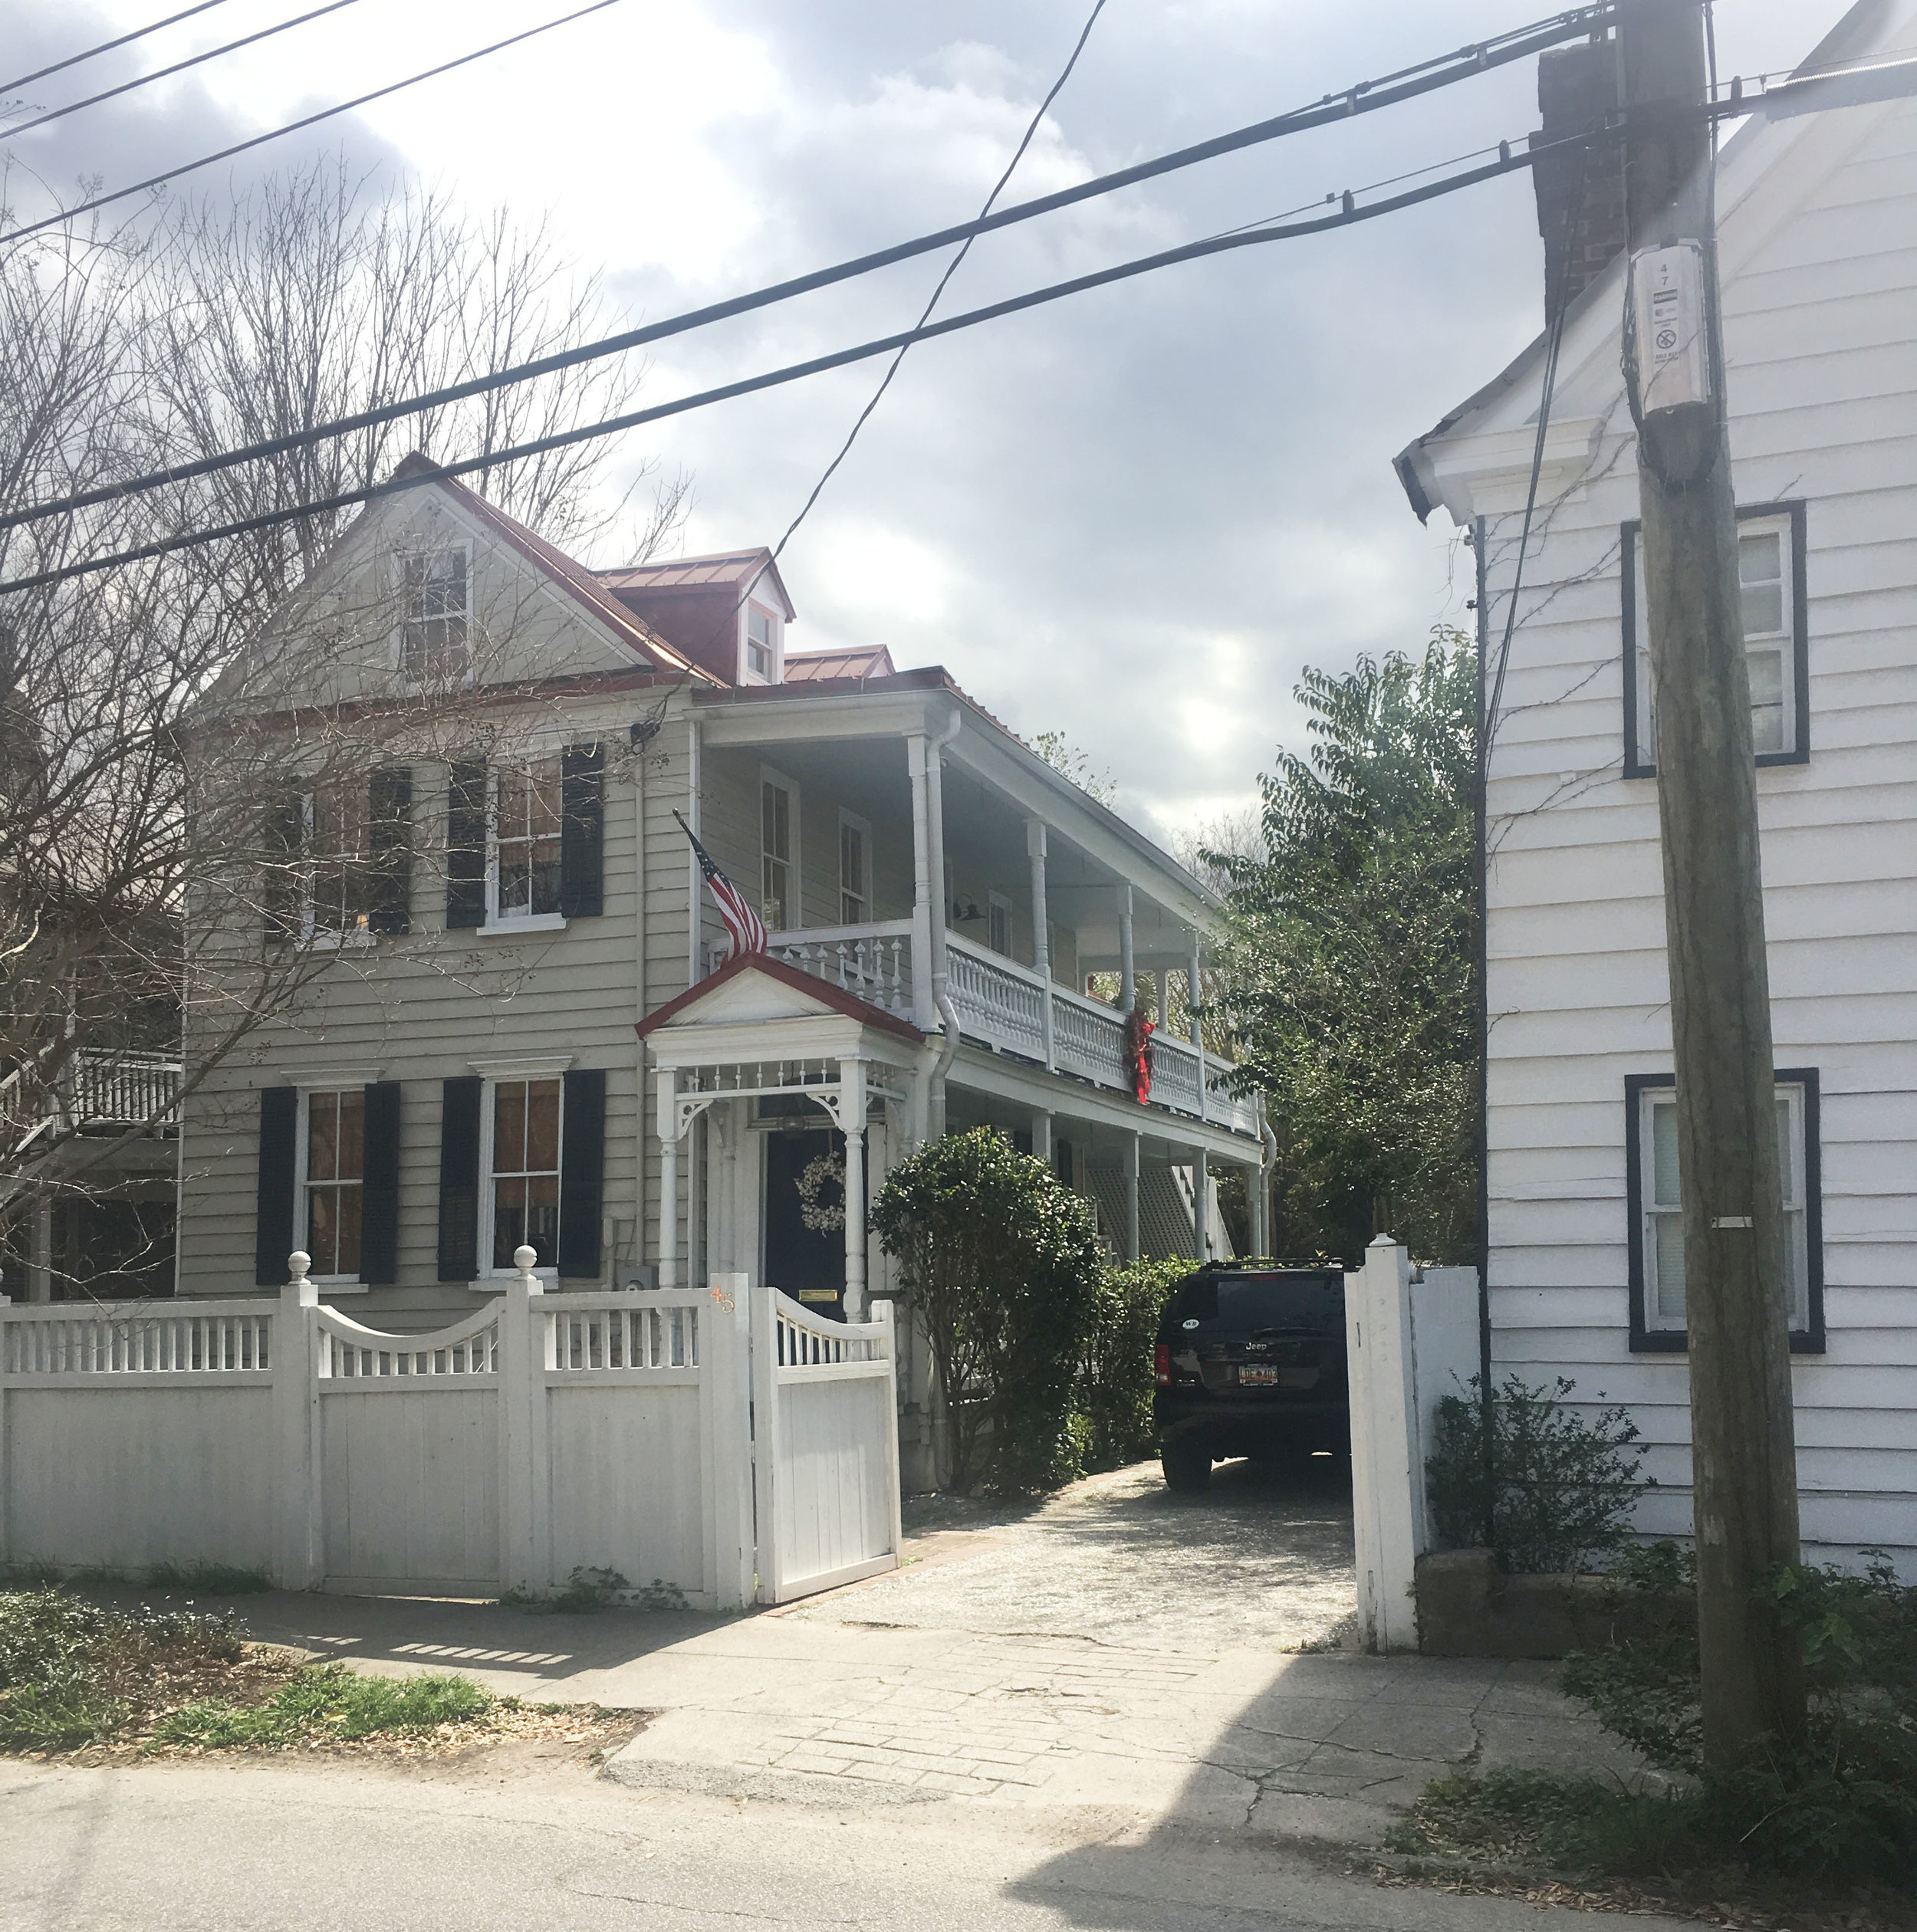 - April 17, 2017This Radcliffeborough house dates back to before 1888. We are currently working on a sensitive addition to this perfect example of the Charleston single home design.